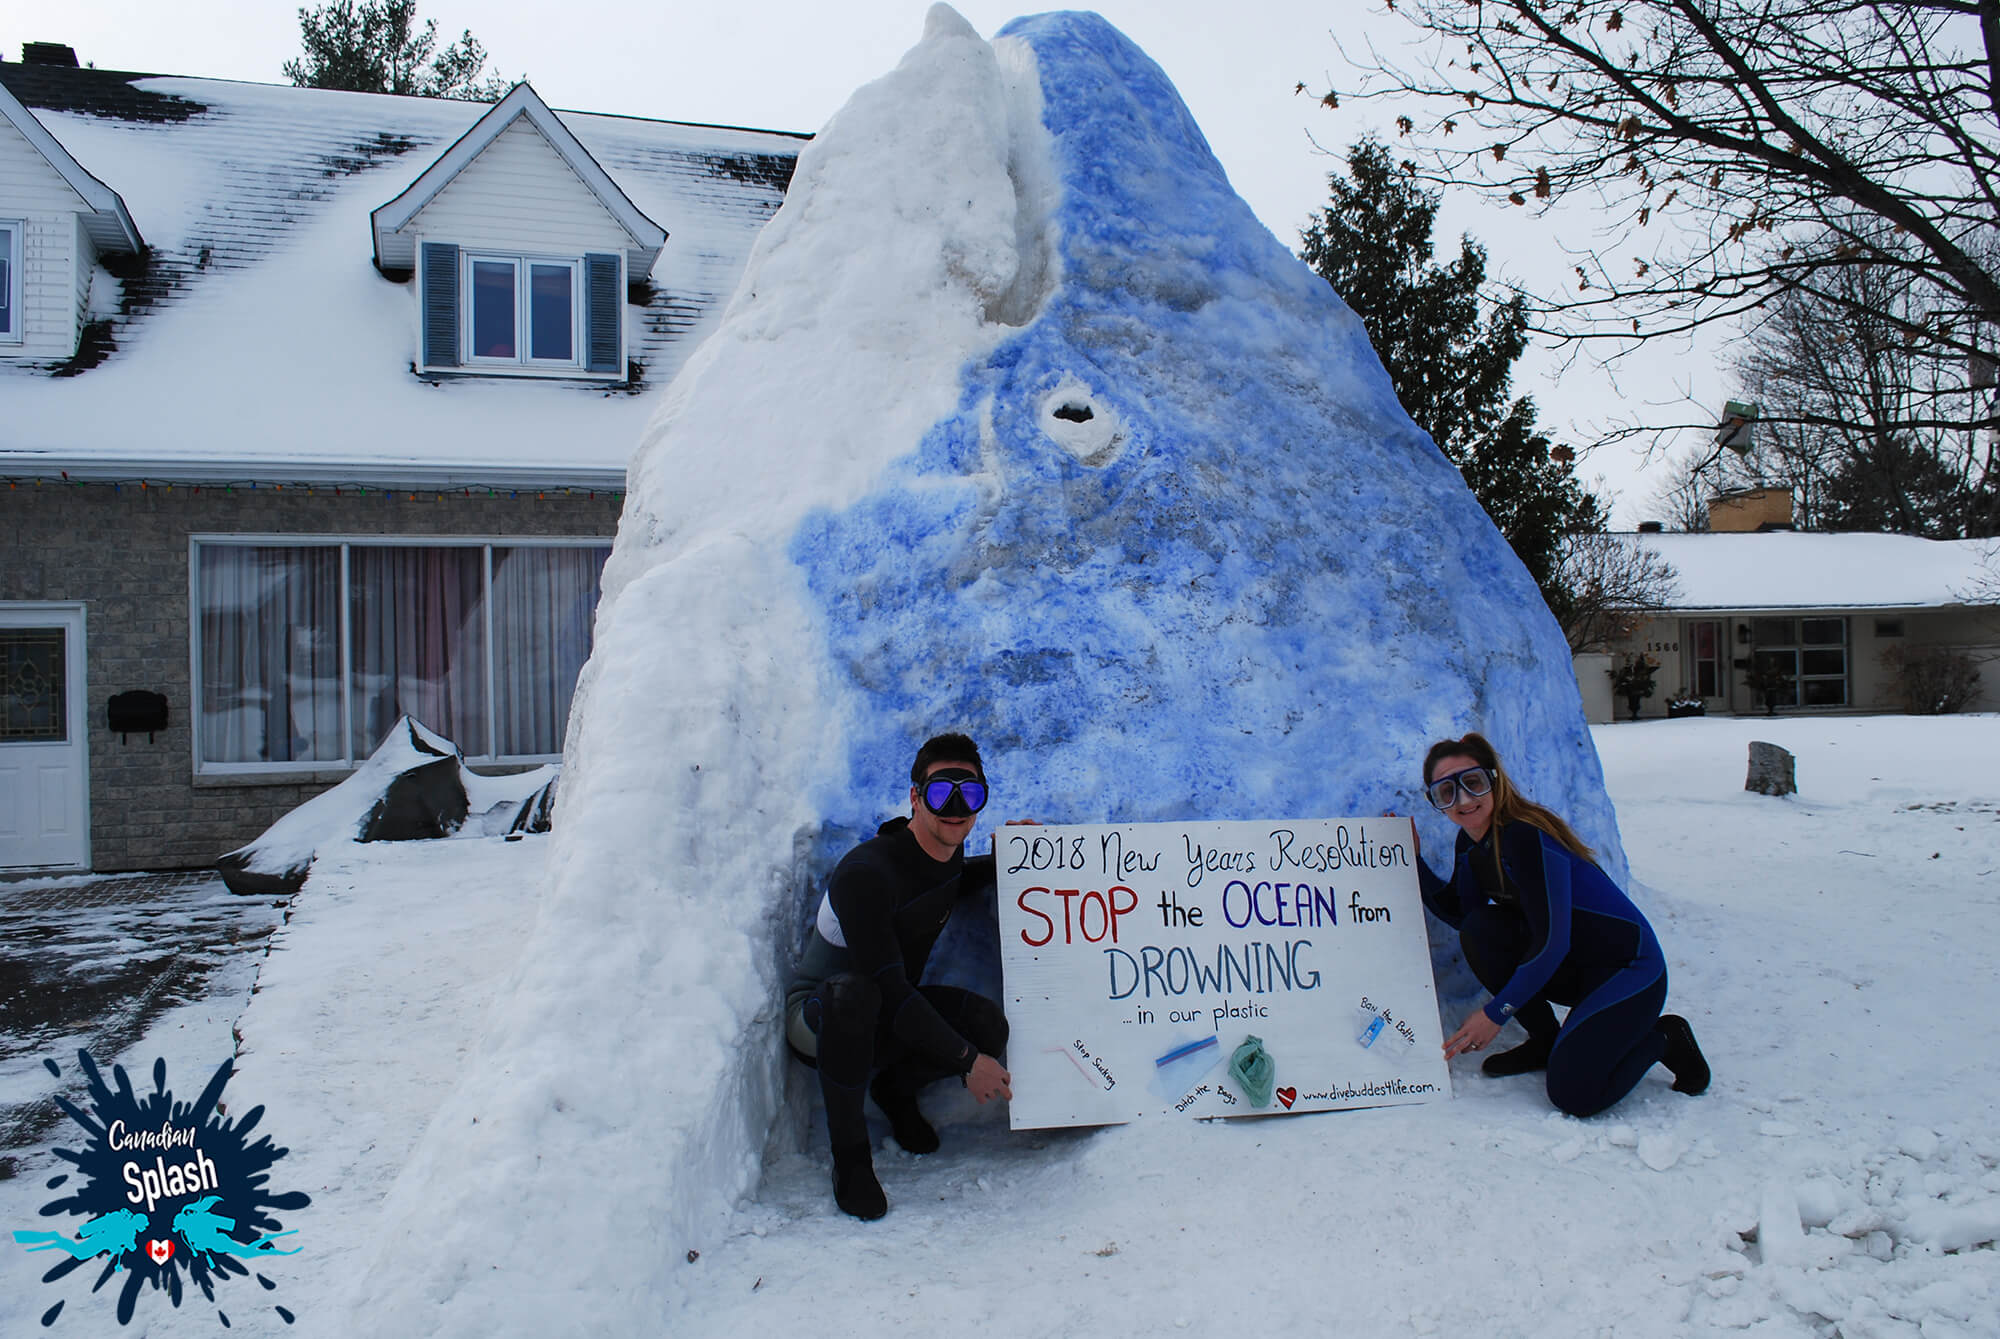 Scuba Divers Joey And Ali In Front Of A Snow Whale Showcasing The Negative Effects Of Plastic On The Aquatic Environment, Canada